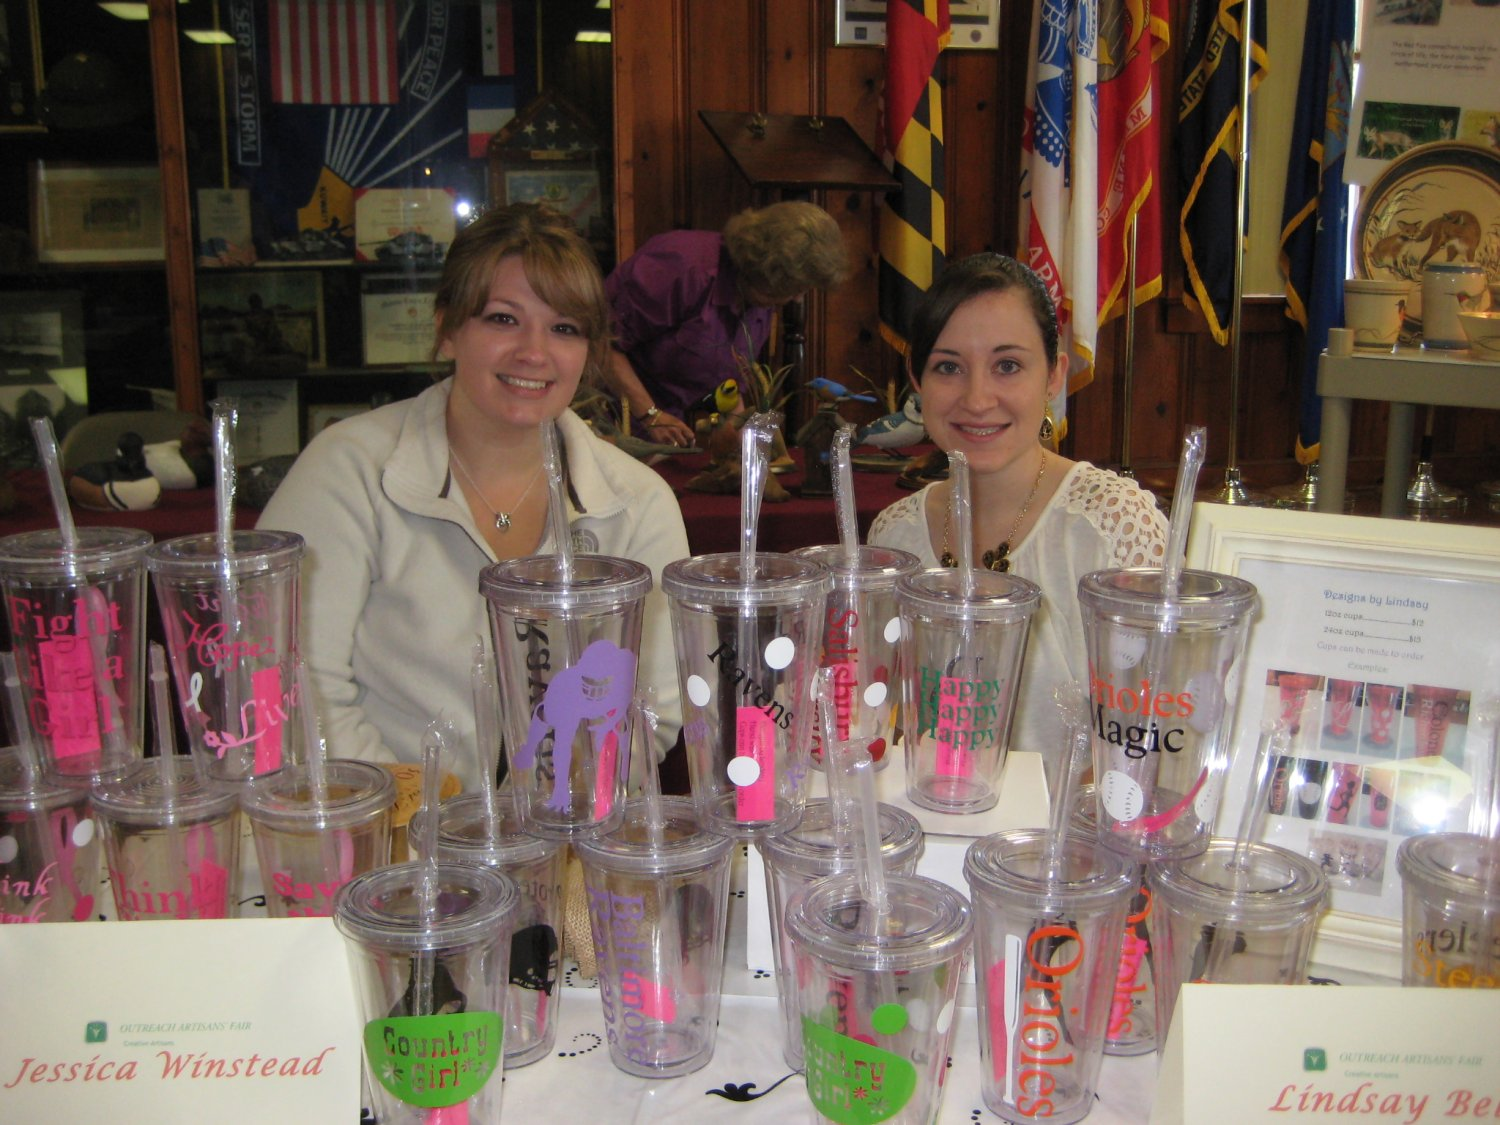 Jessica Winstead sold handcrafted wreaths (not shown), and Lindsay  Bell offered her handpainted tumblers.